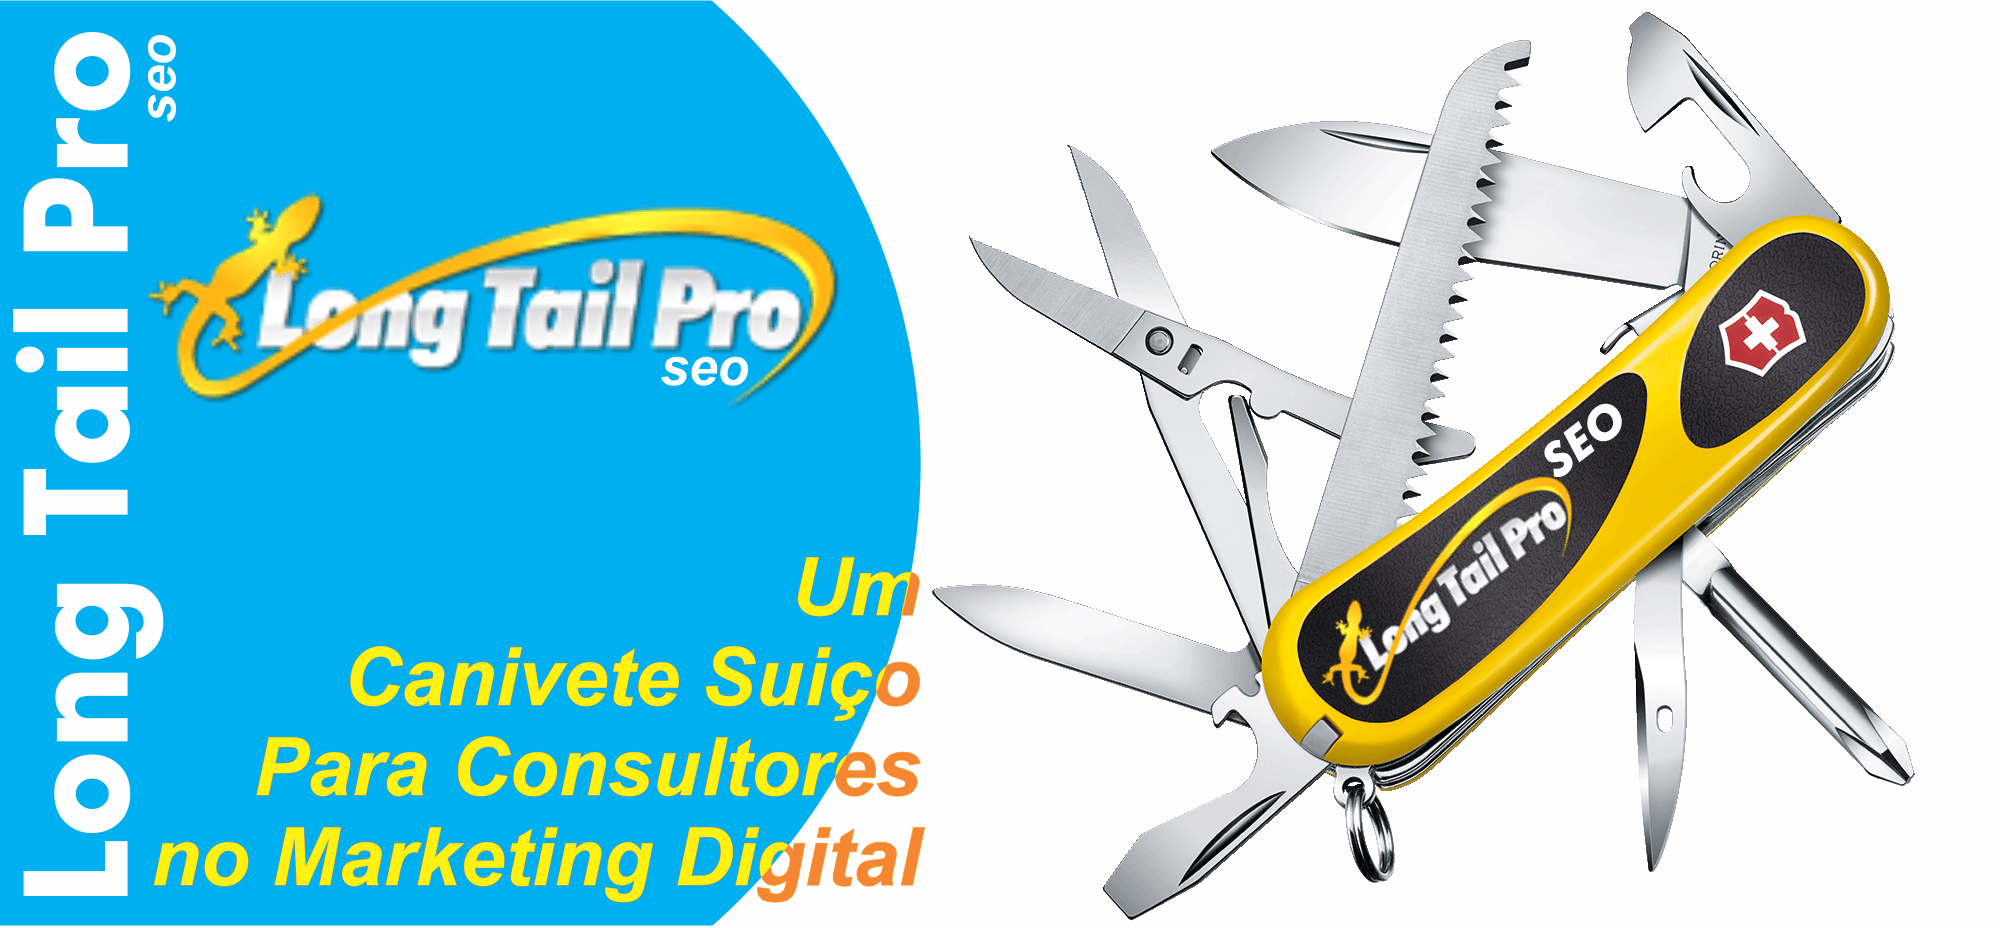 comprar long tail pro seo para consultores no marketing digital